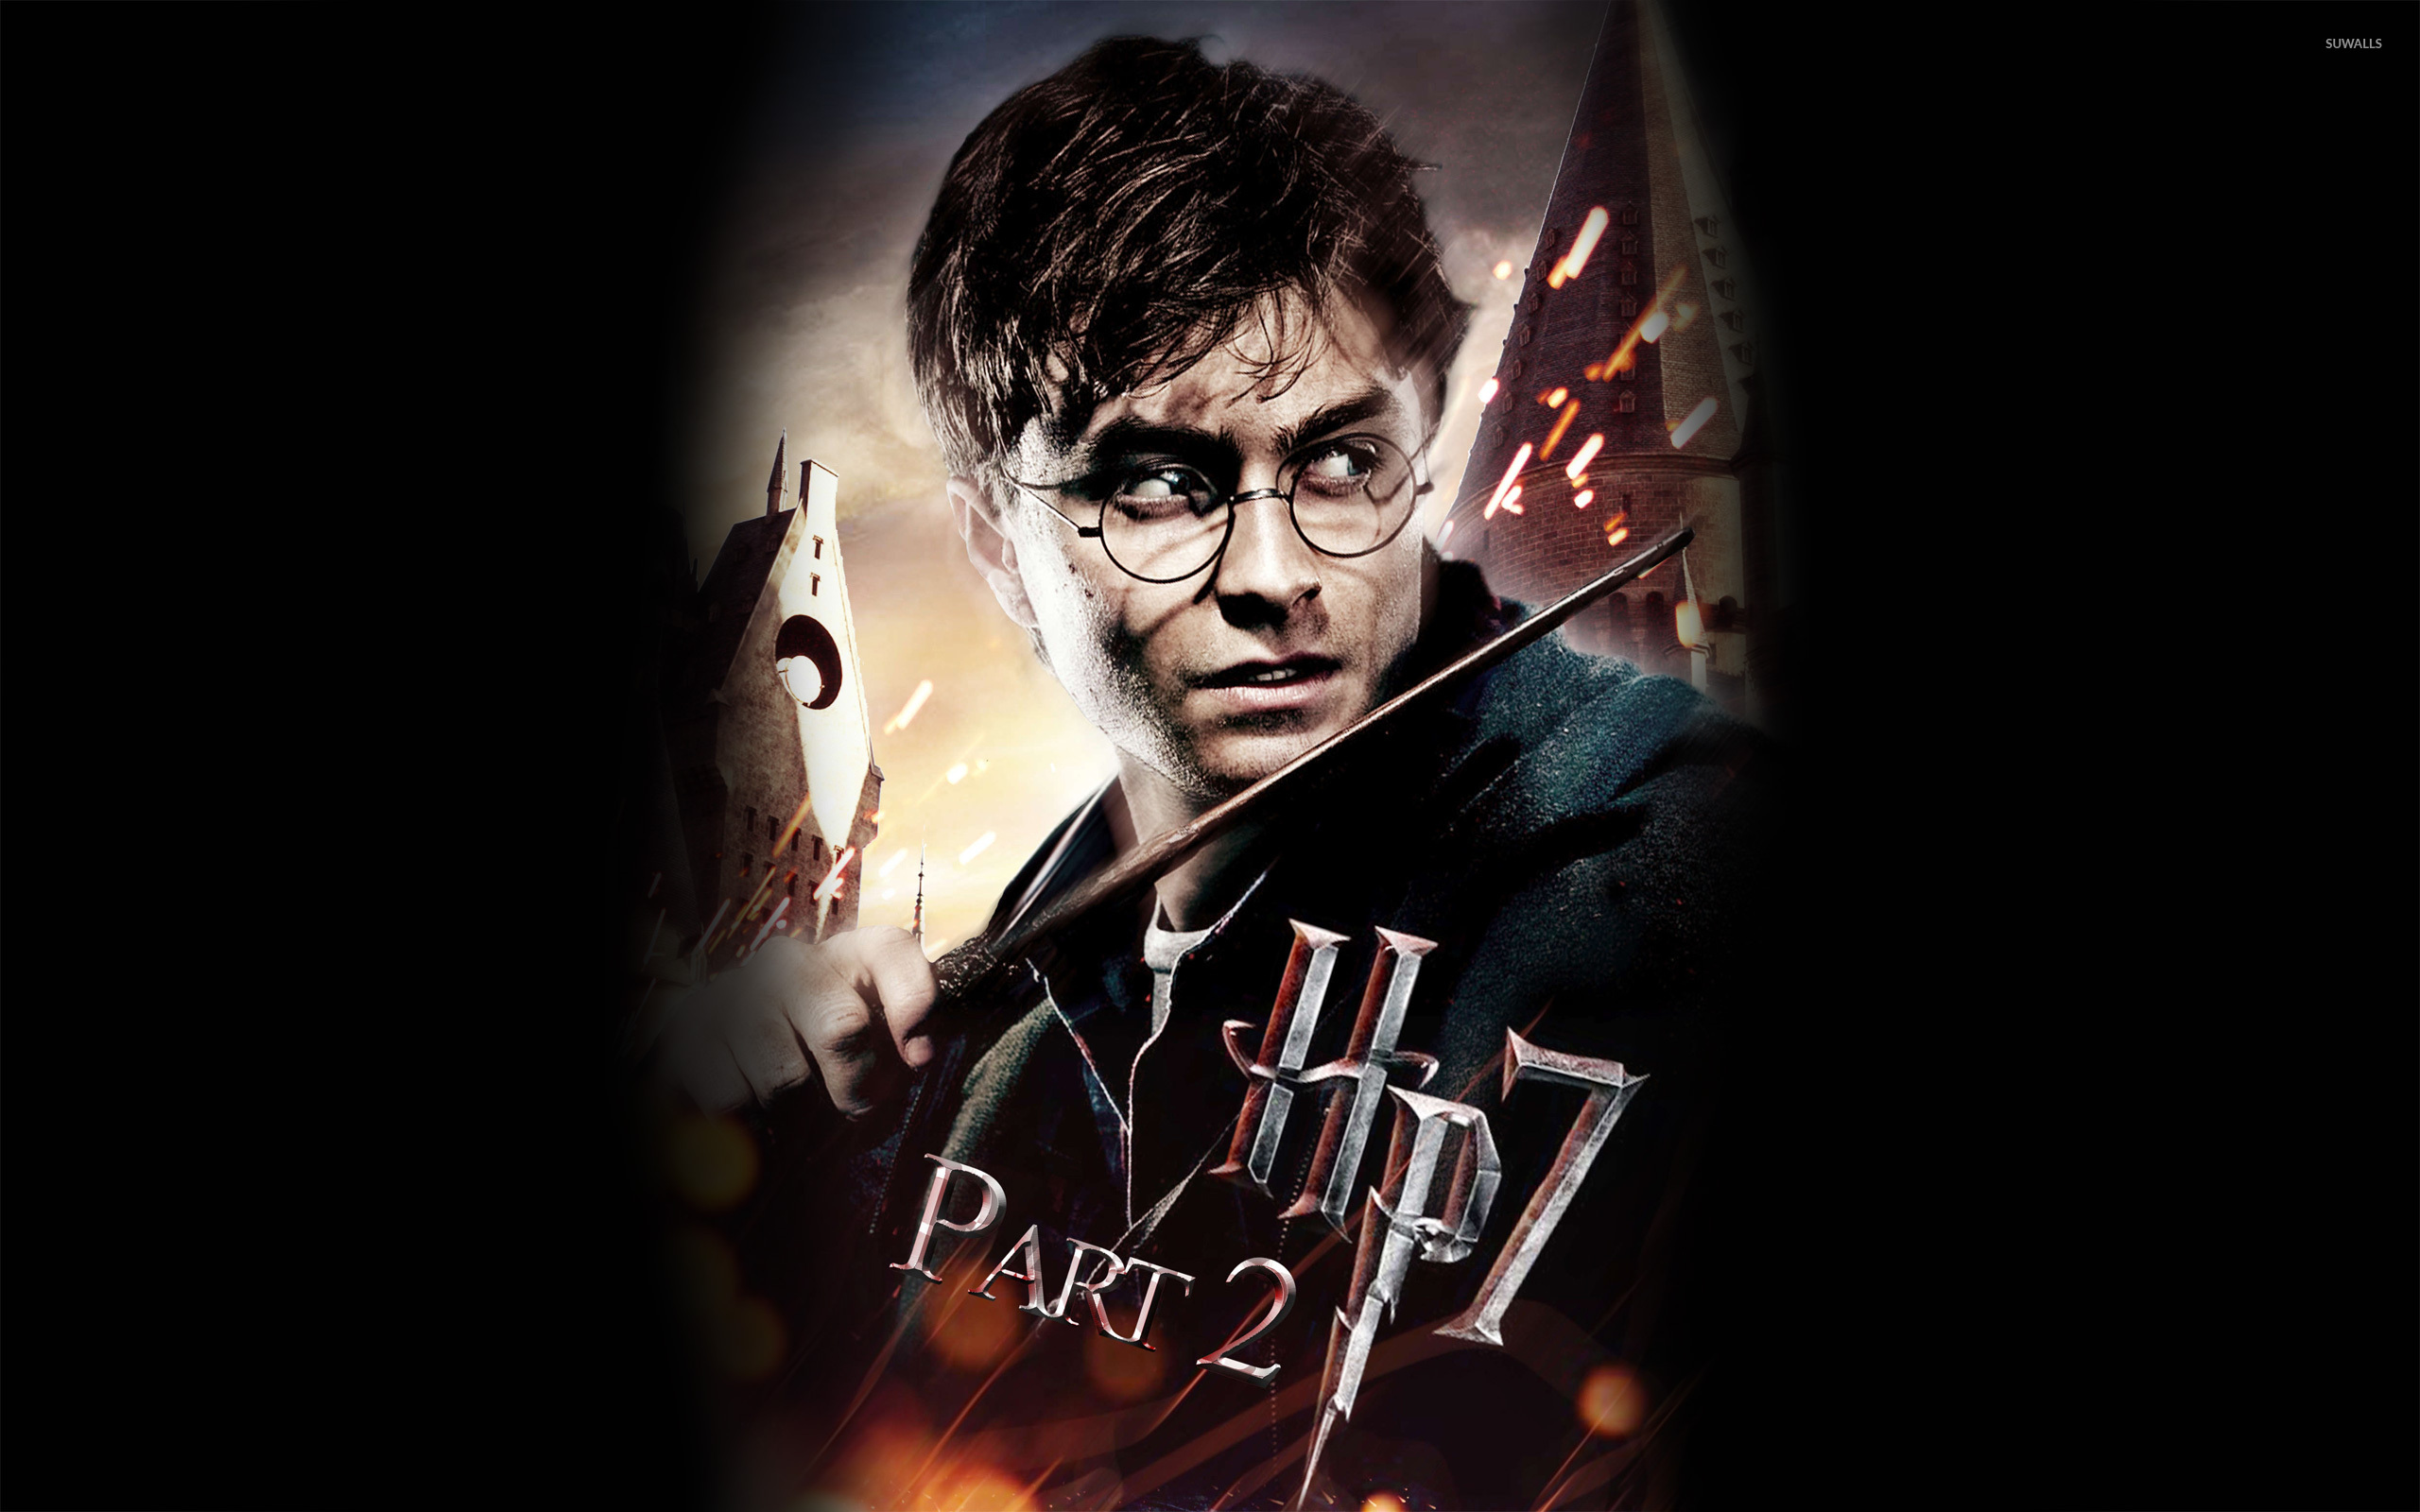 Harry Potter And The Deathly Hallows Part 2 5 Wallpaper Movie